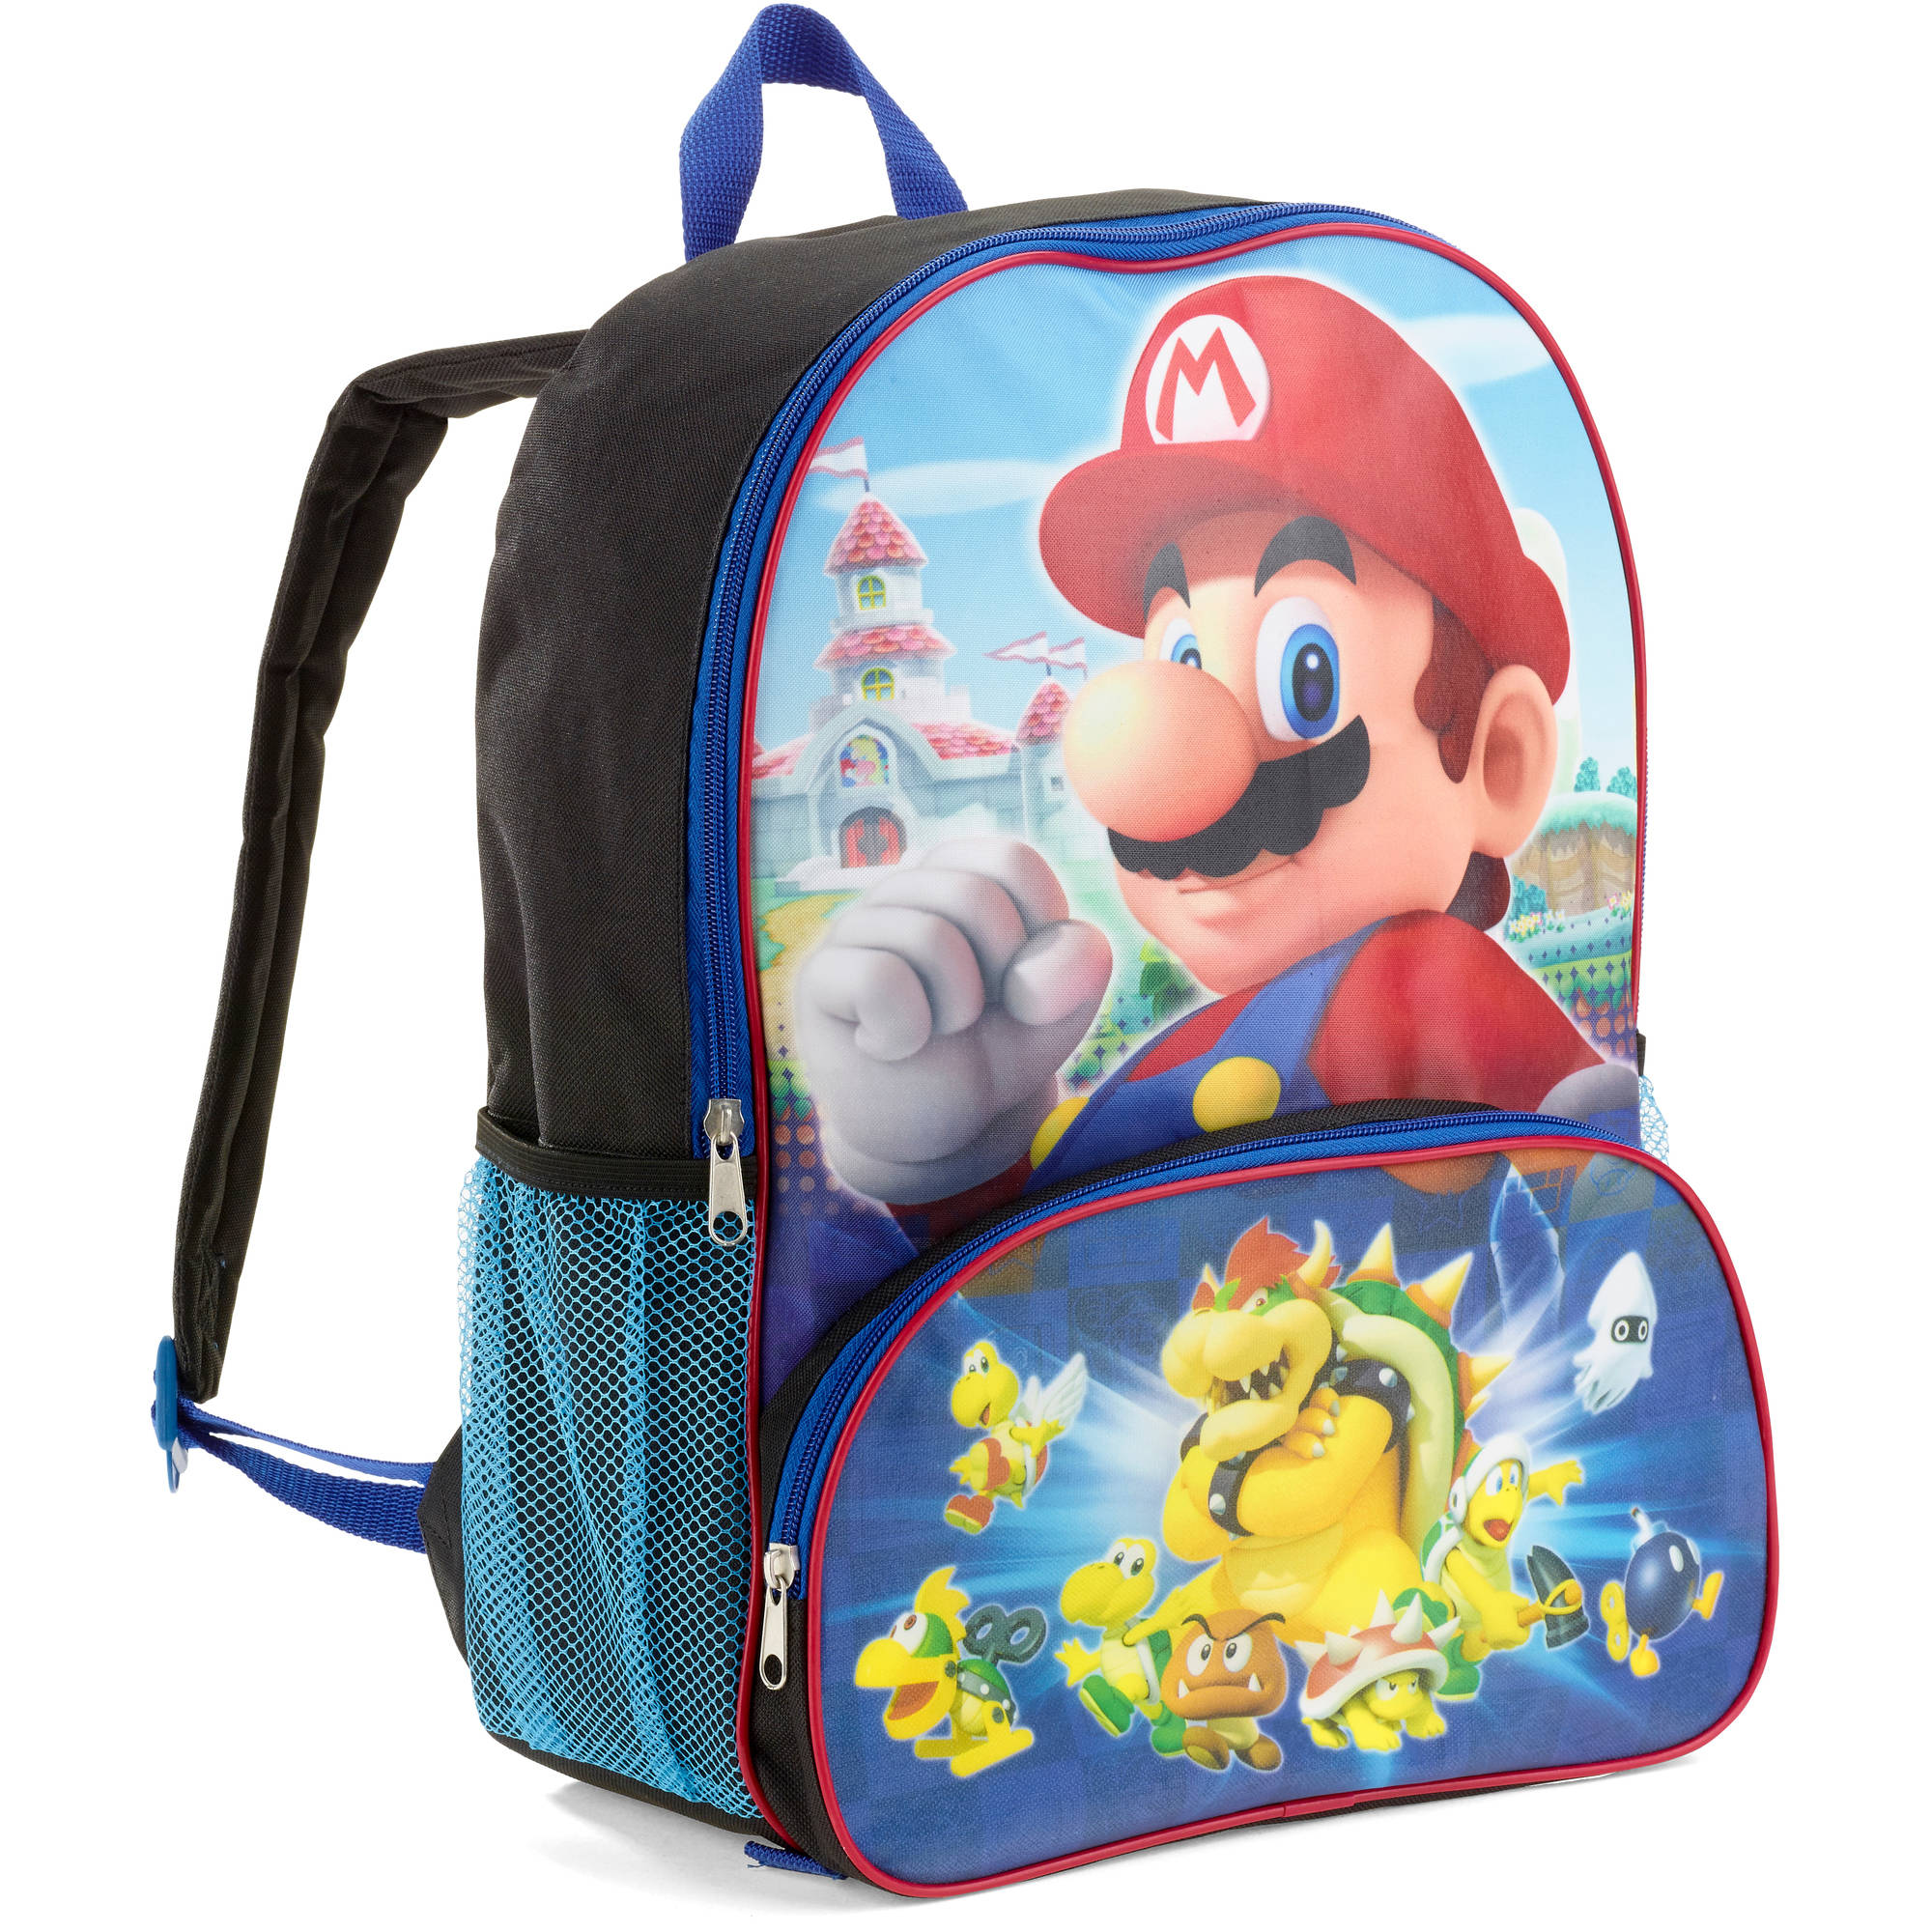 Super Mario 16 Inch Backpack